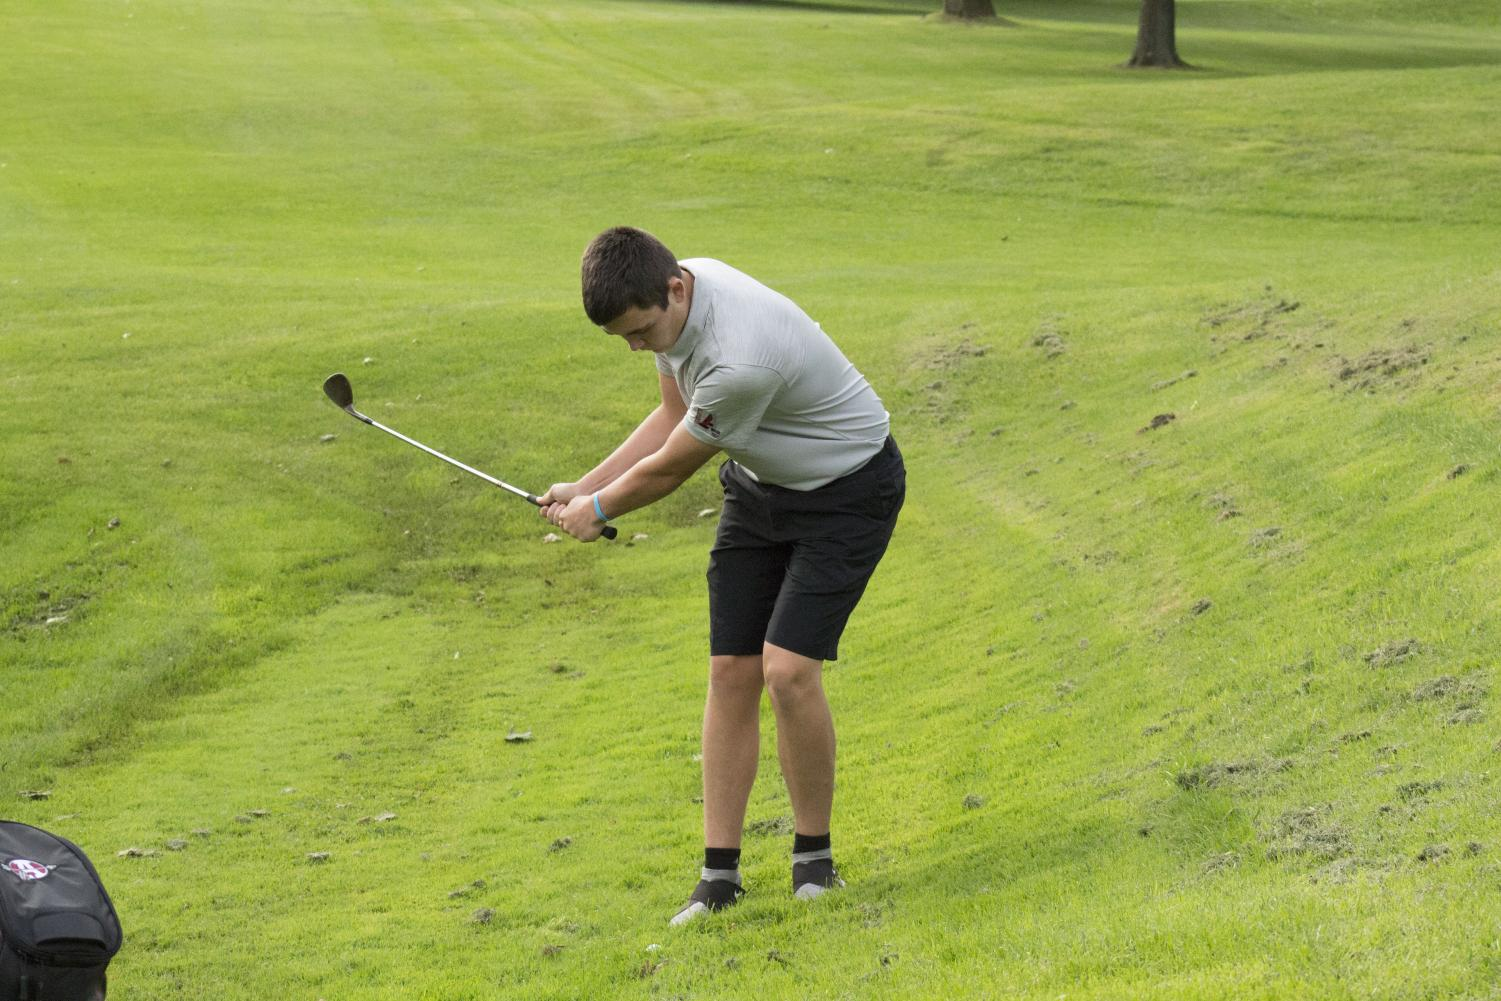 Gavin Eldridge, junior, chips the ball out of the rough, and down the fairway.